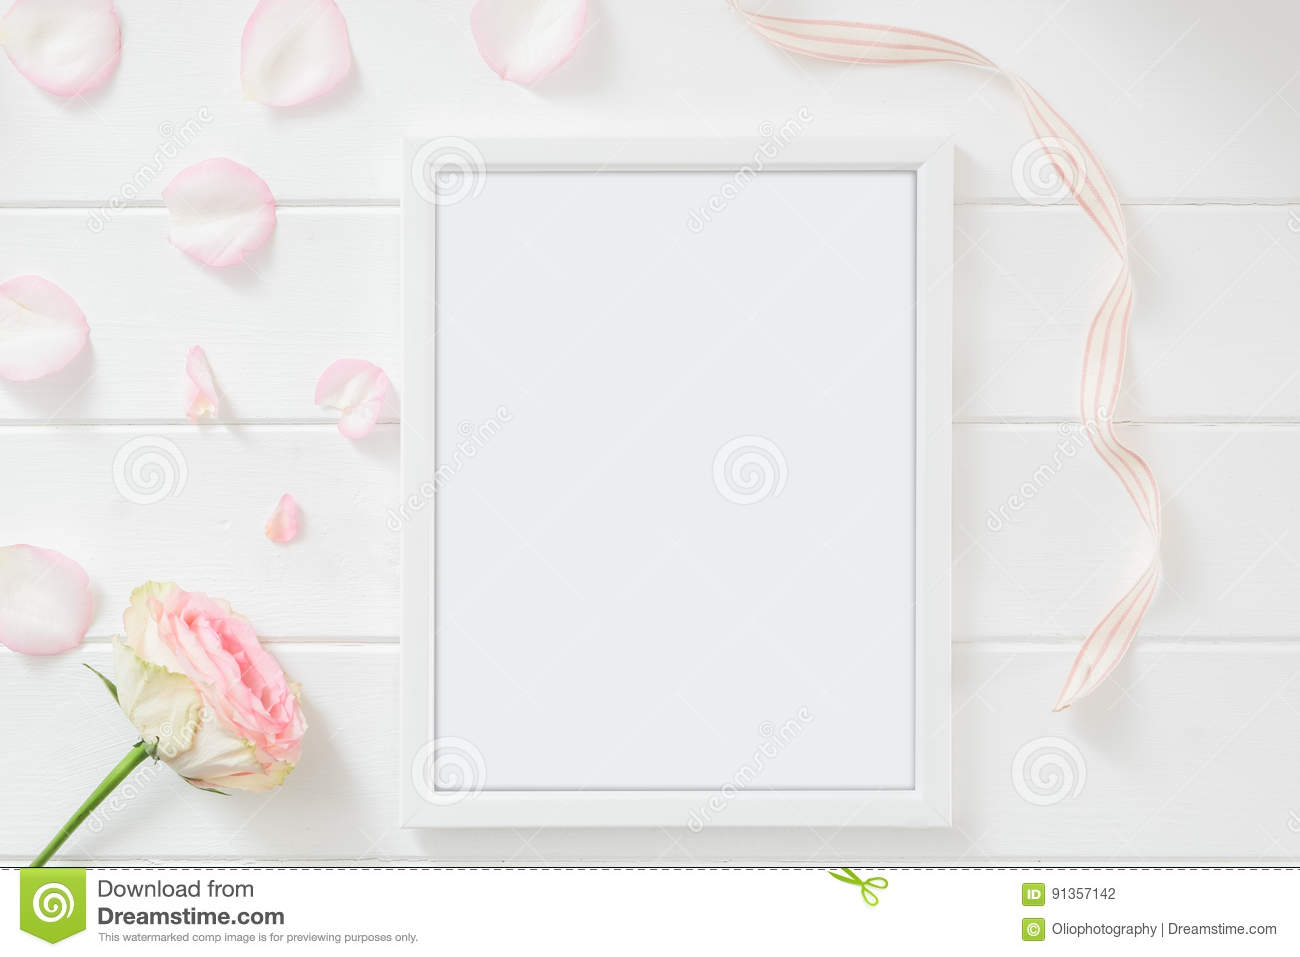 39b16943069b Frame Mockup Floral Styled Stock Photograph Stock Photo - Image of ...